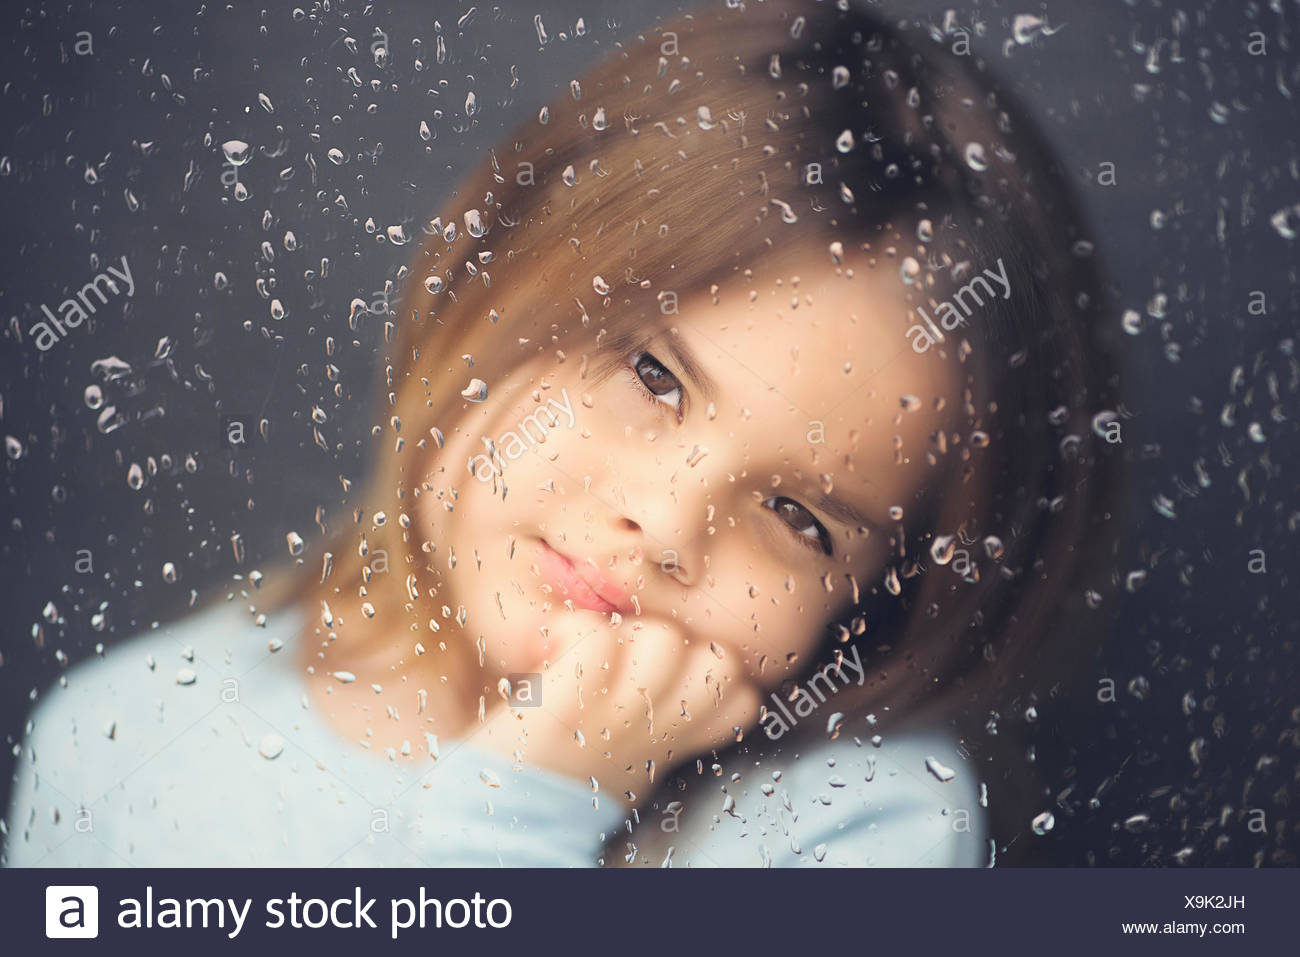 Girl looking out of a window on a rainy day - Stock Image